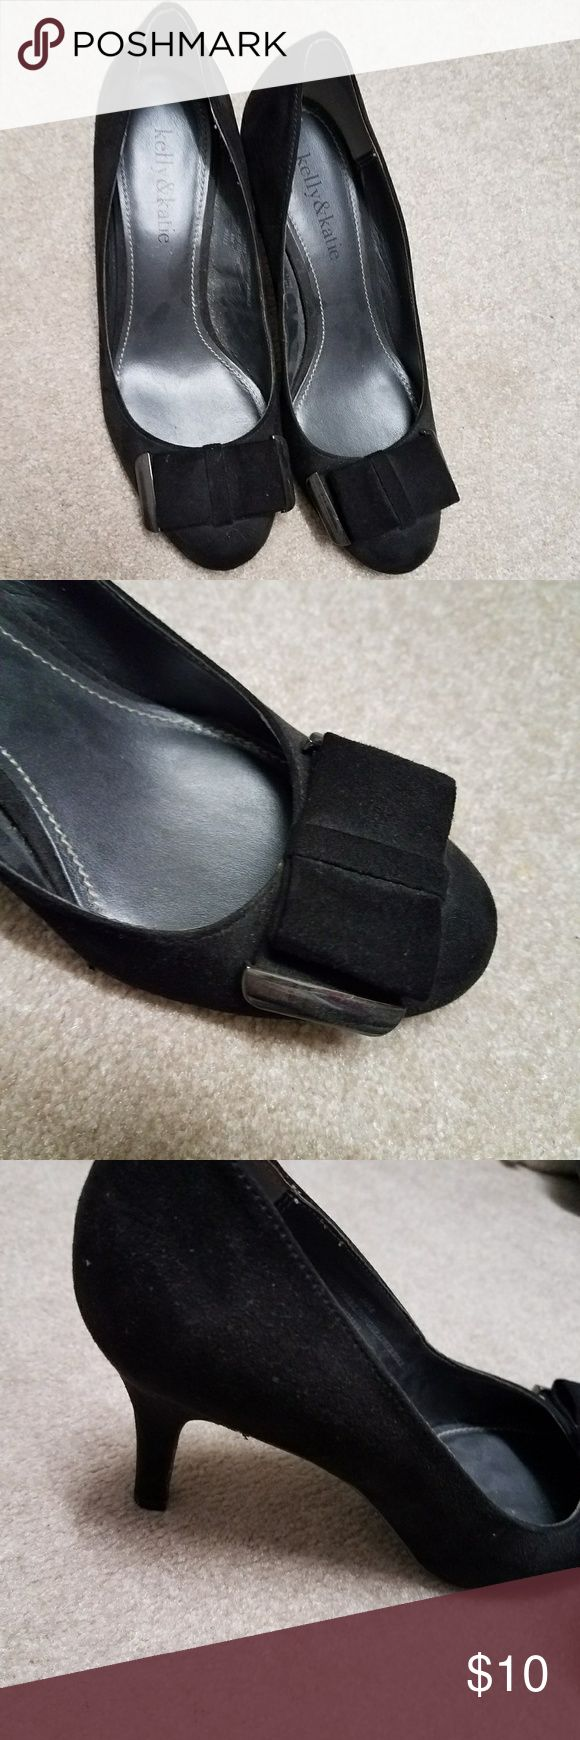 Kelly & Katie black heels with bow Suede-like material. Adorable bow on toe with metal detail. In good condition. Size 6. Perfect for work or a fun night out. Kelly & Katie Shoes